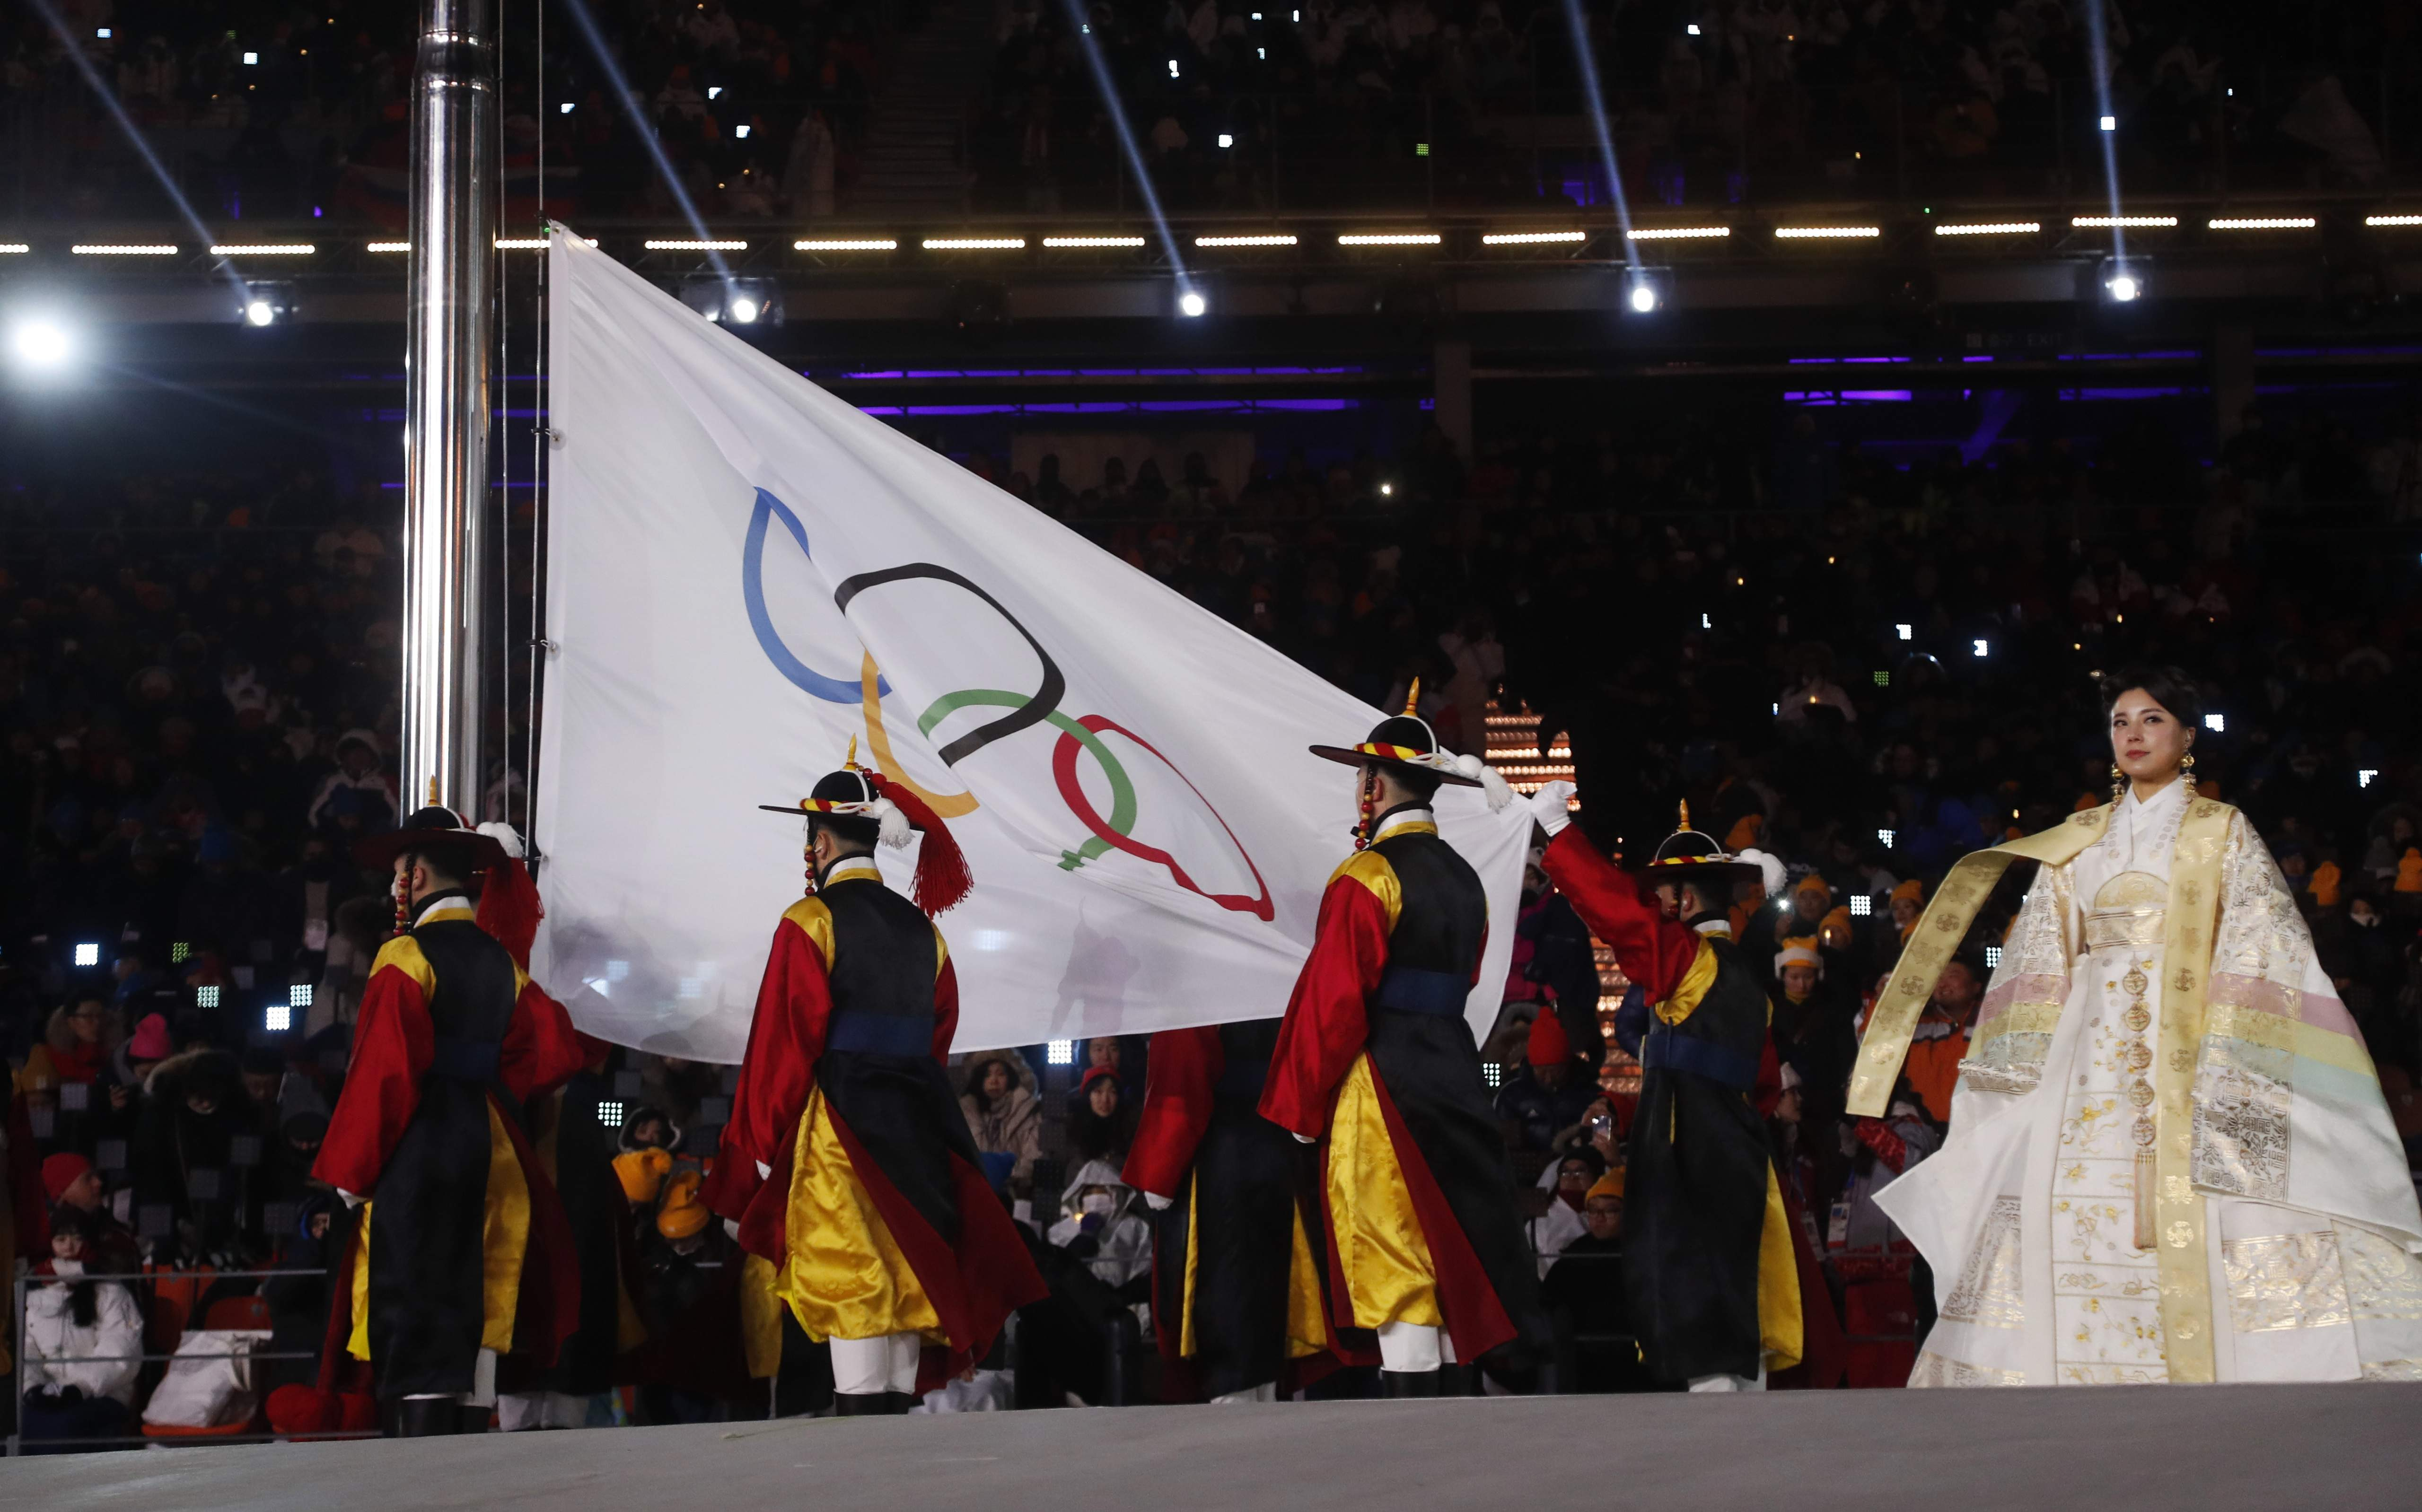 The Olympic flag is raised during the opening ceremony of the 2018 Winter Olympics in Pyeongchang, South Korea, Friday, Feb. 9, 2018. (AP Photo/Petr David Josek)